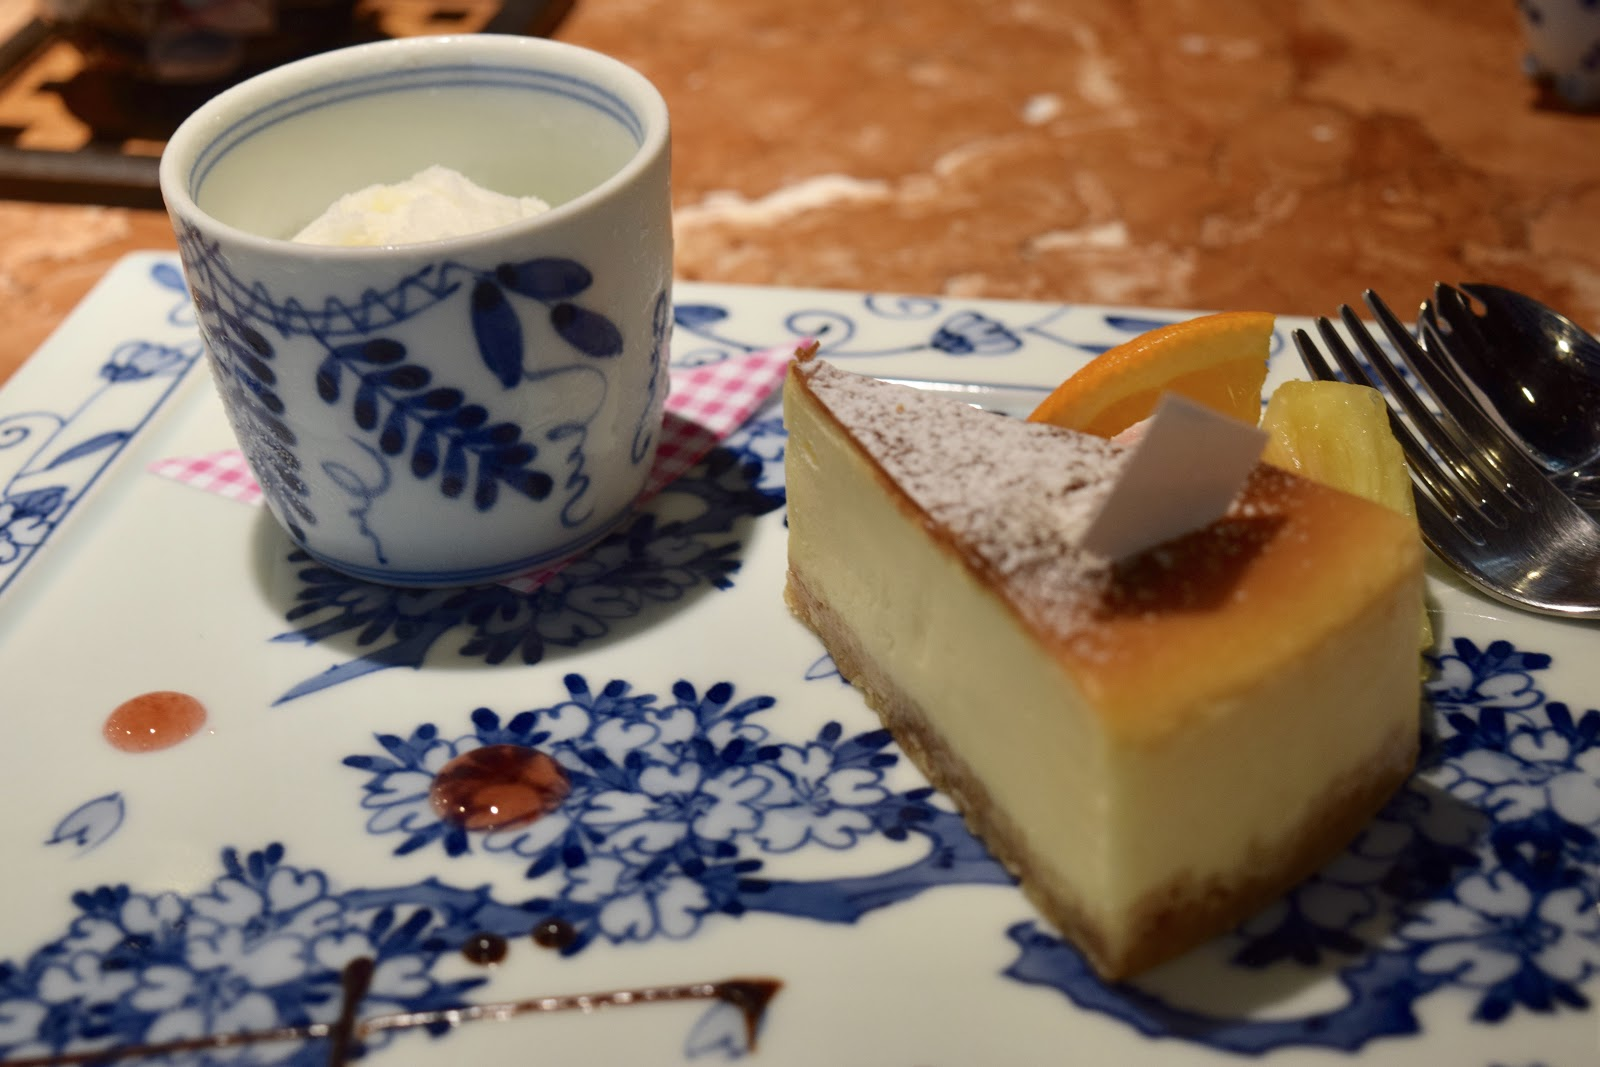 picture of the plate holding the cheesecake